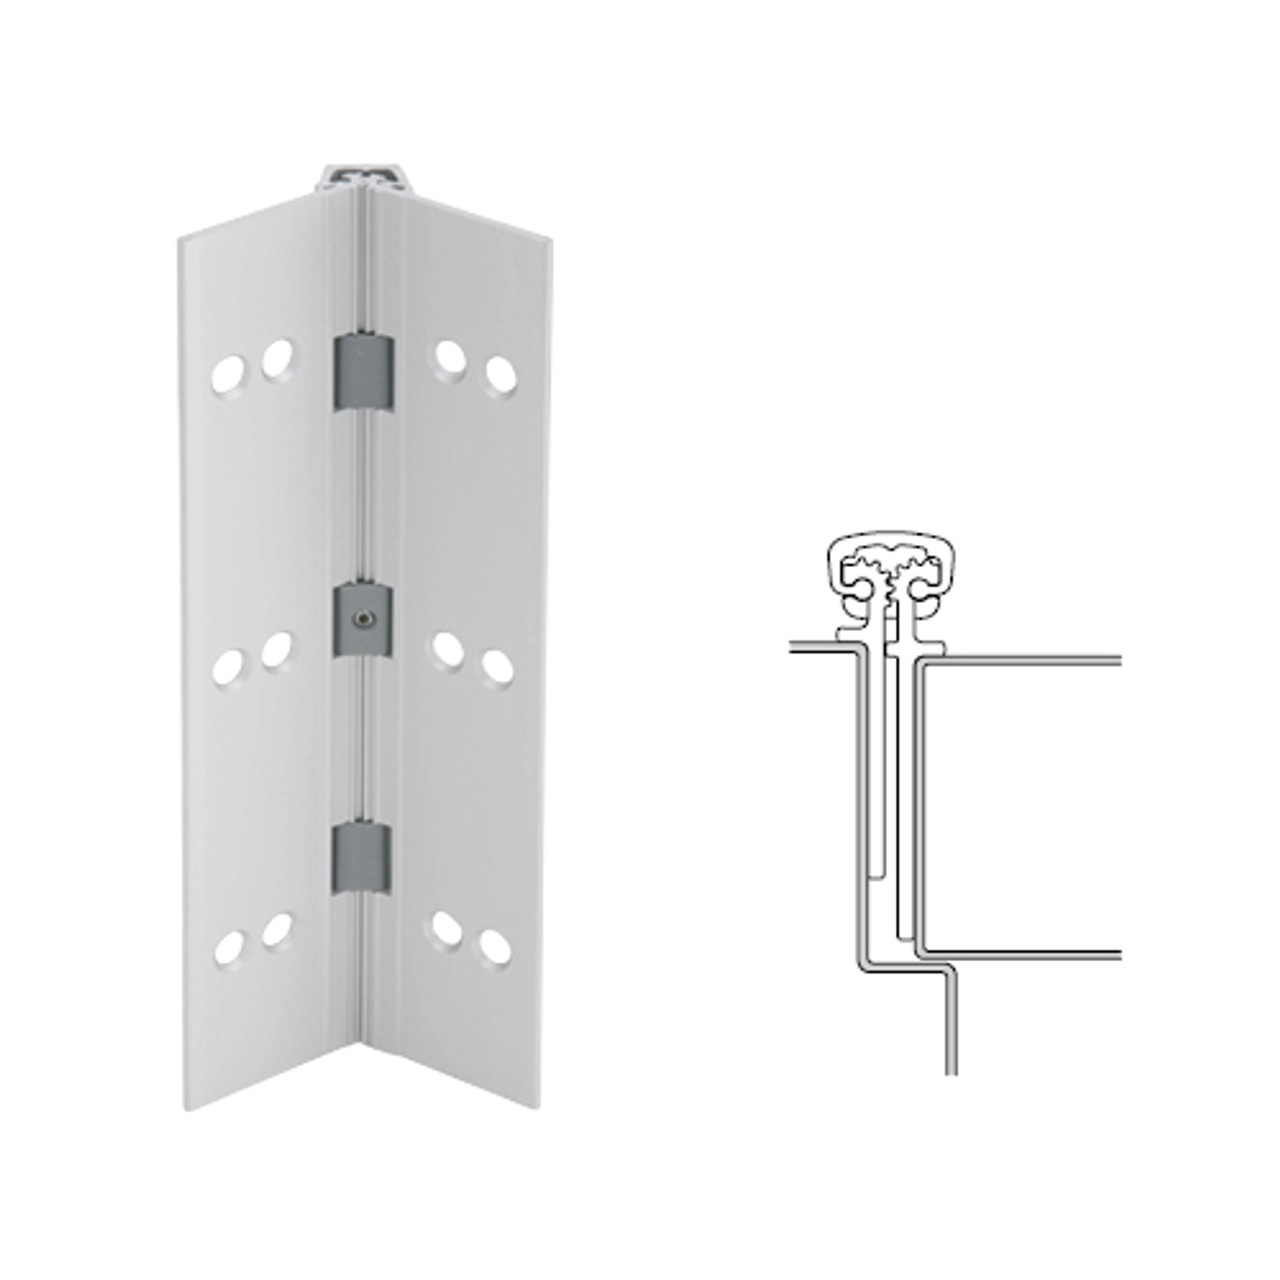 026XY-US28-95-HT IVES Full Mortise Continuous Geared Hinges with Hospital Tip in Satin Aluminum